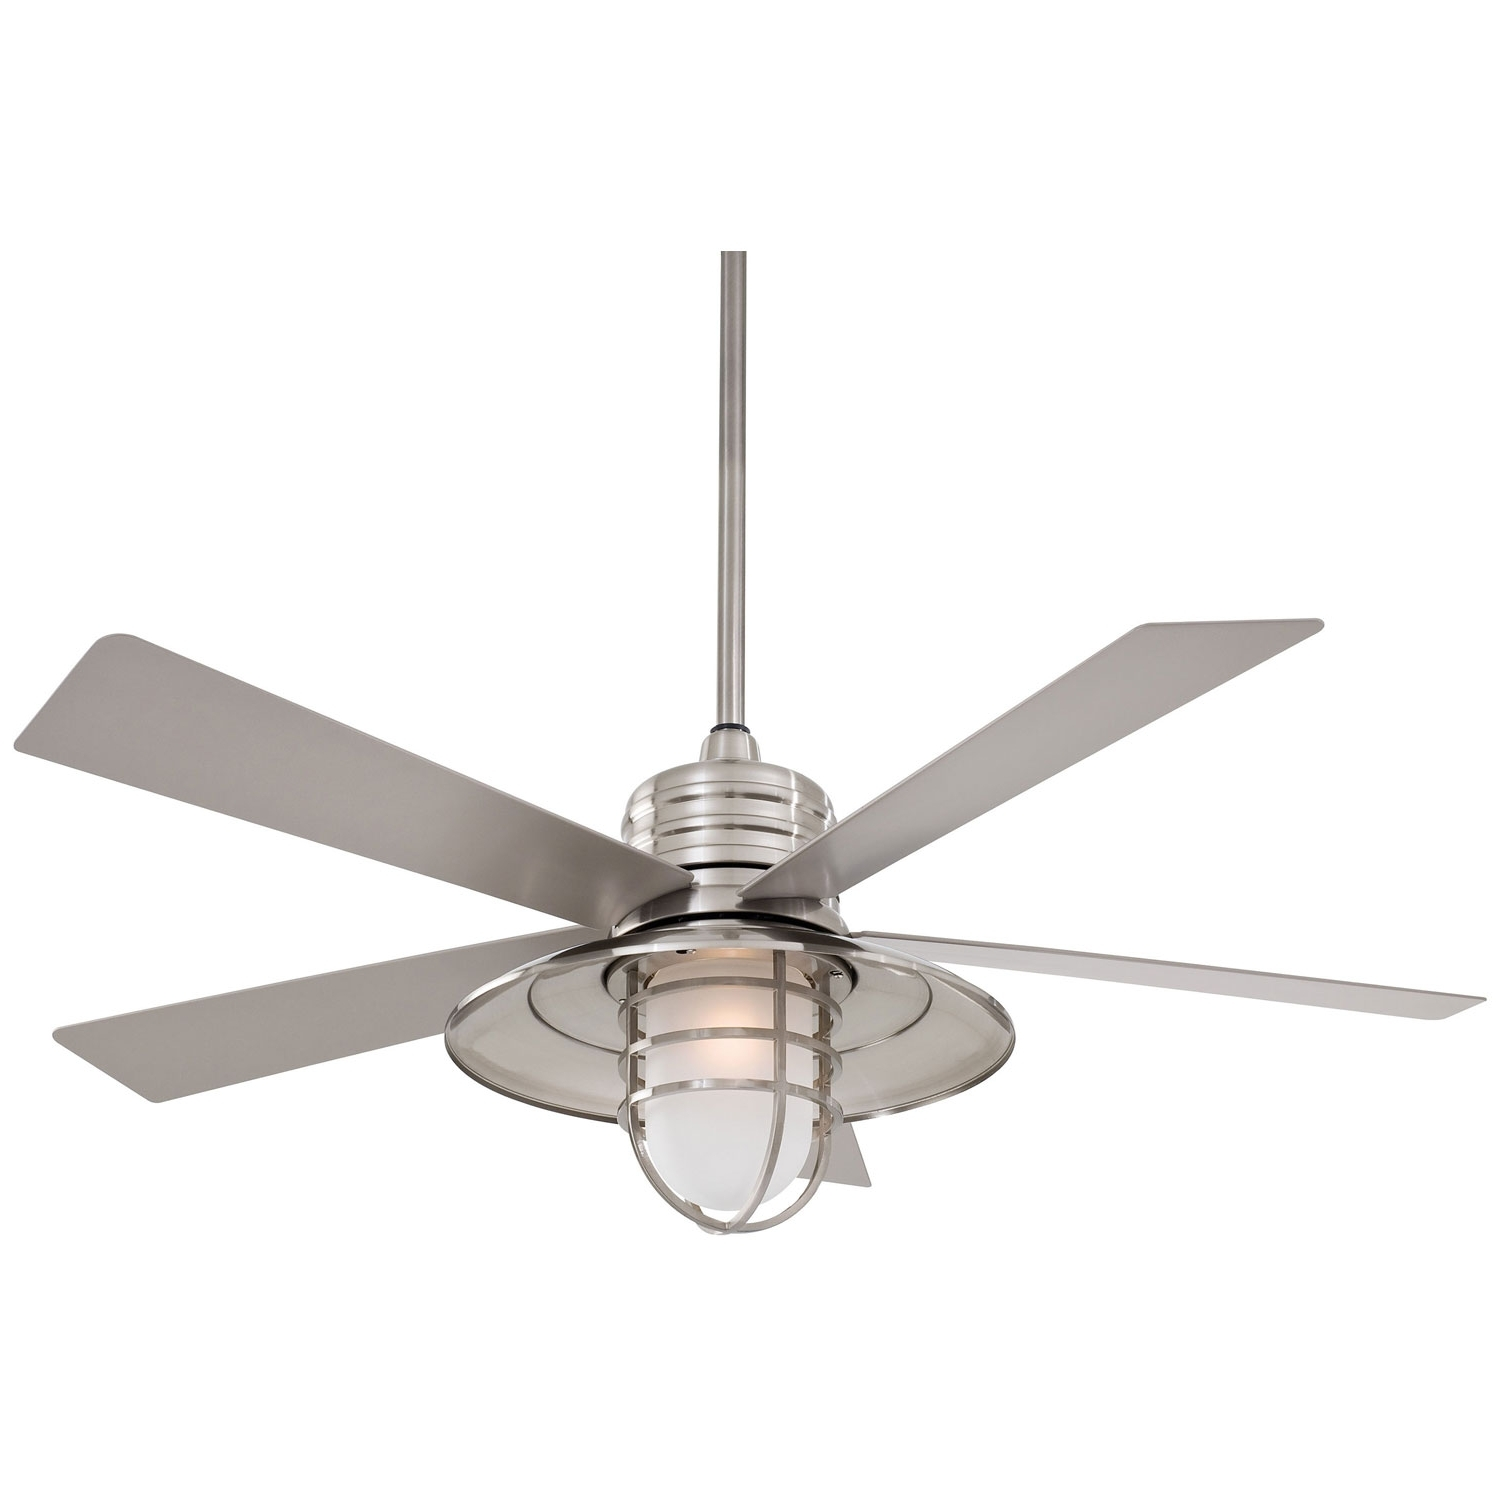 Outdoor Ceiling Fans For Wet Locations Inside Most Popular Minka Aire Rainman Brushed Nickel 54 Inch Blade Indoor/outdoor (View 9 of 20)